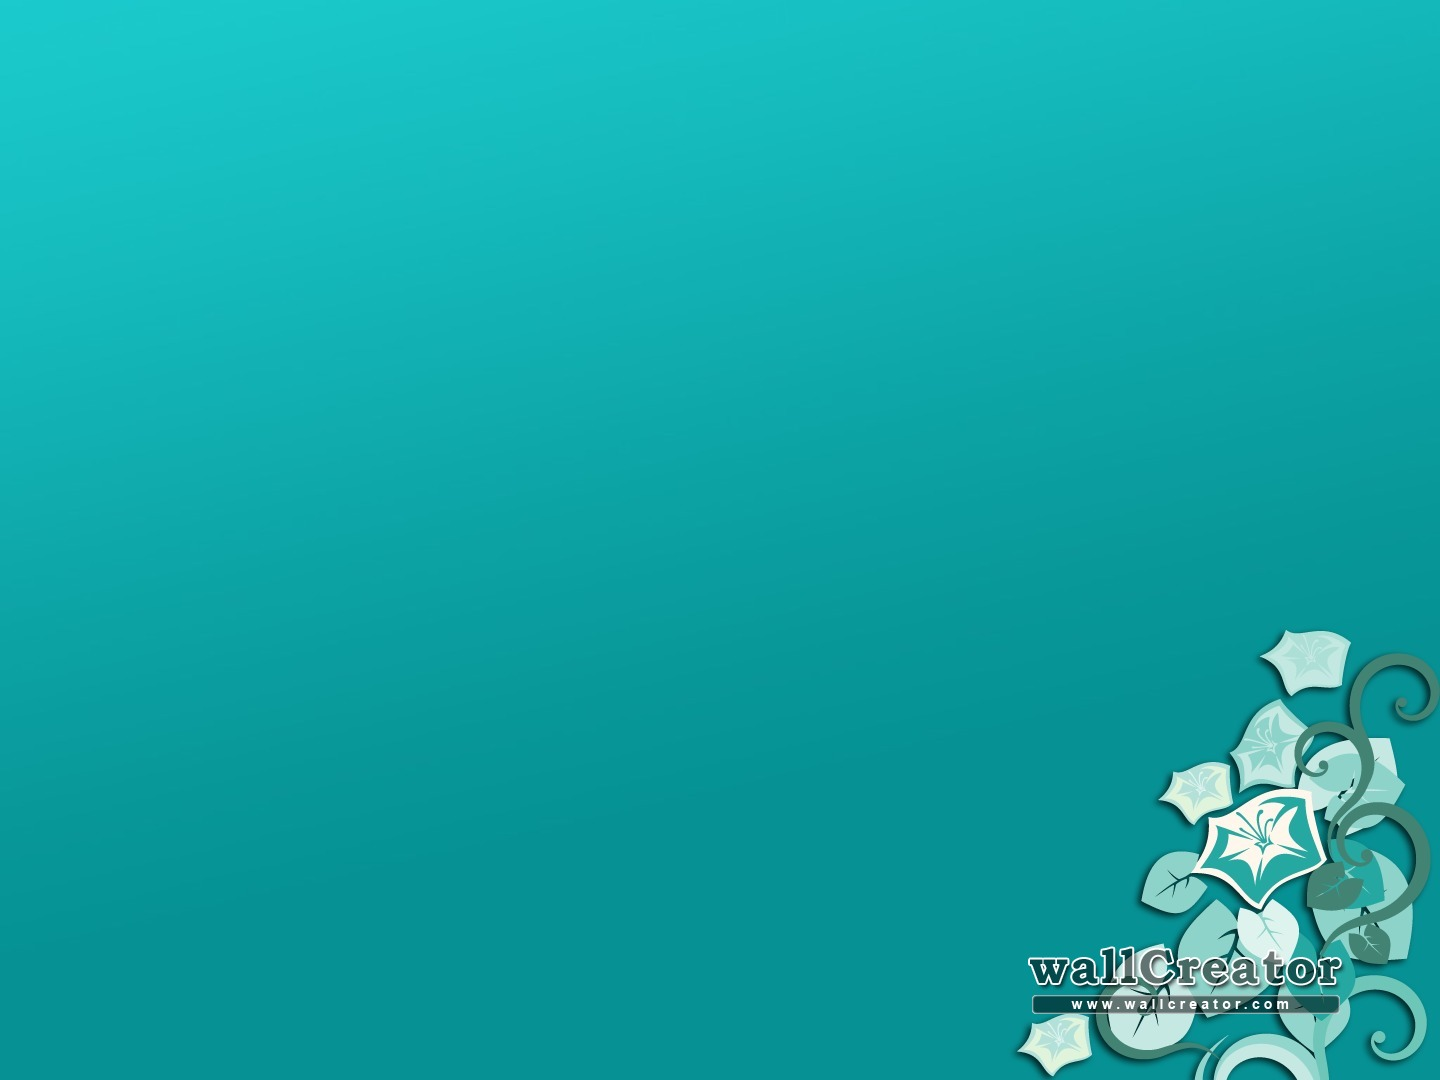 Teal and gray wallpaper